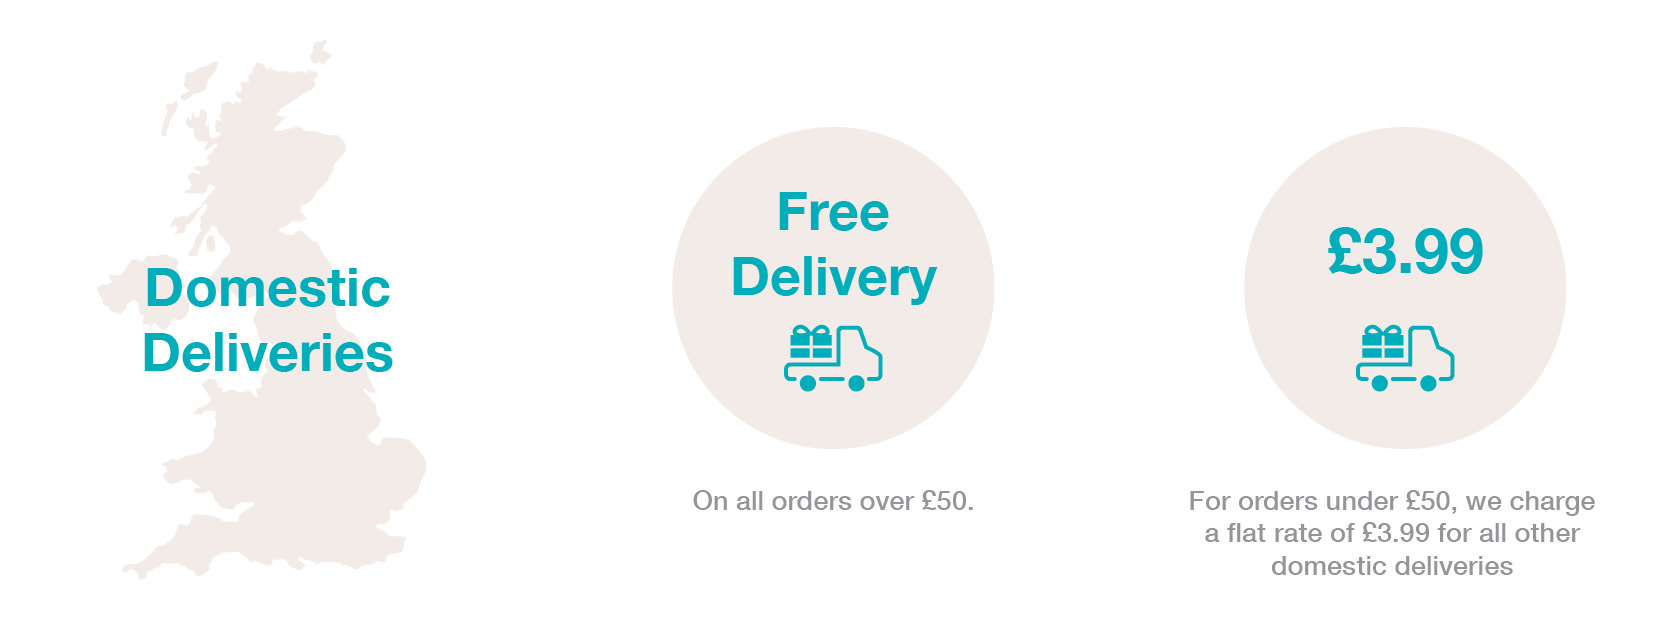 delivery-images.jpg